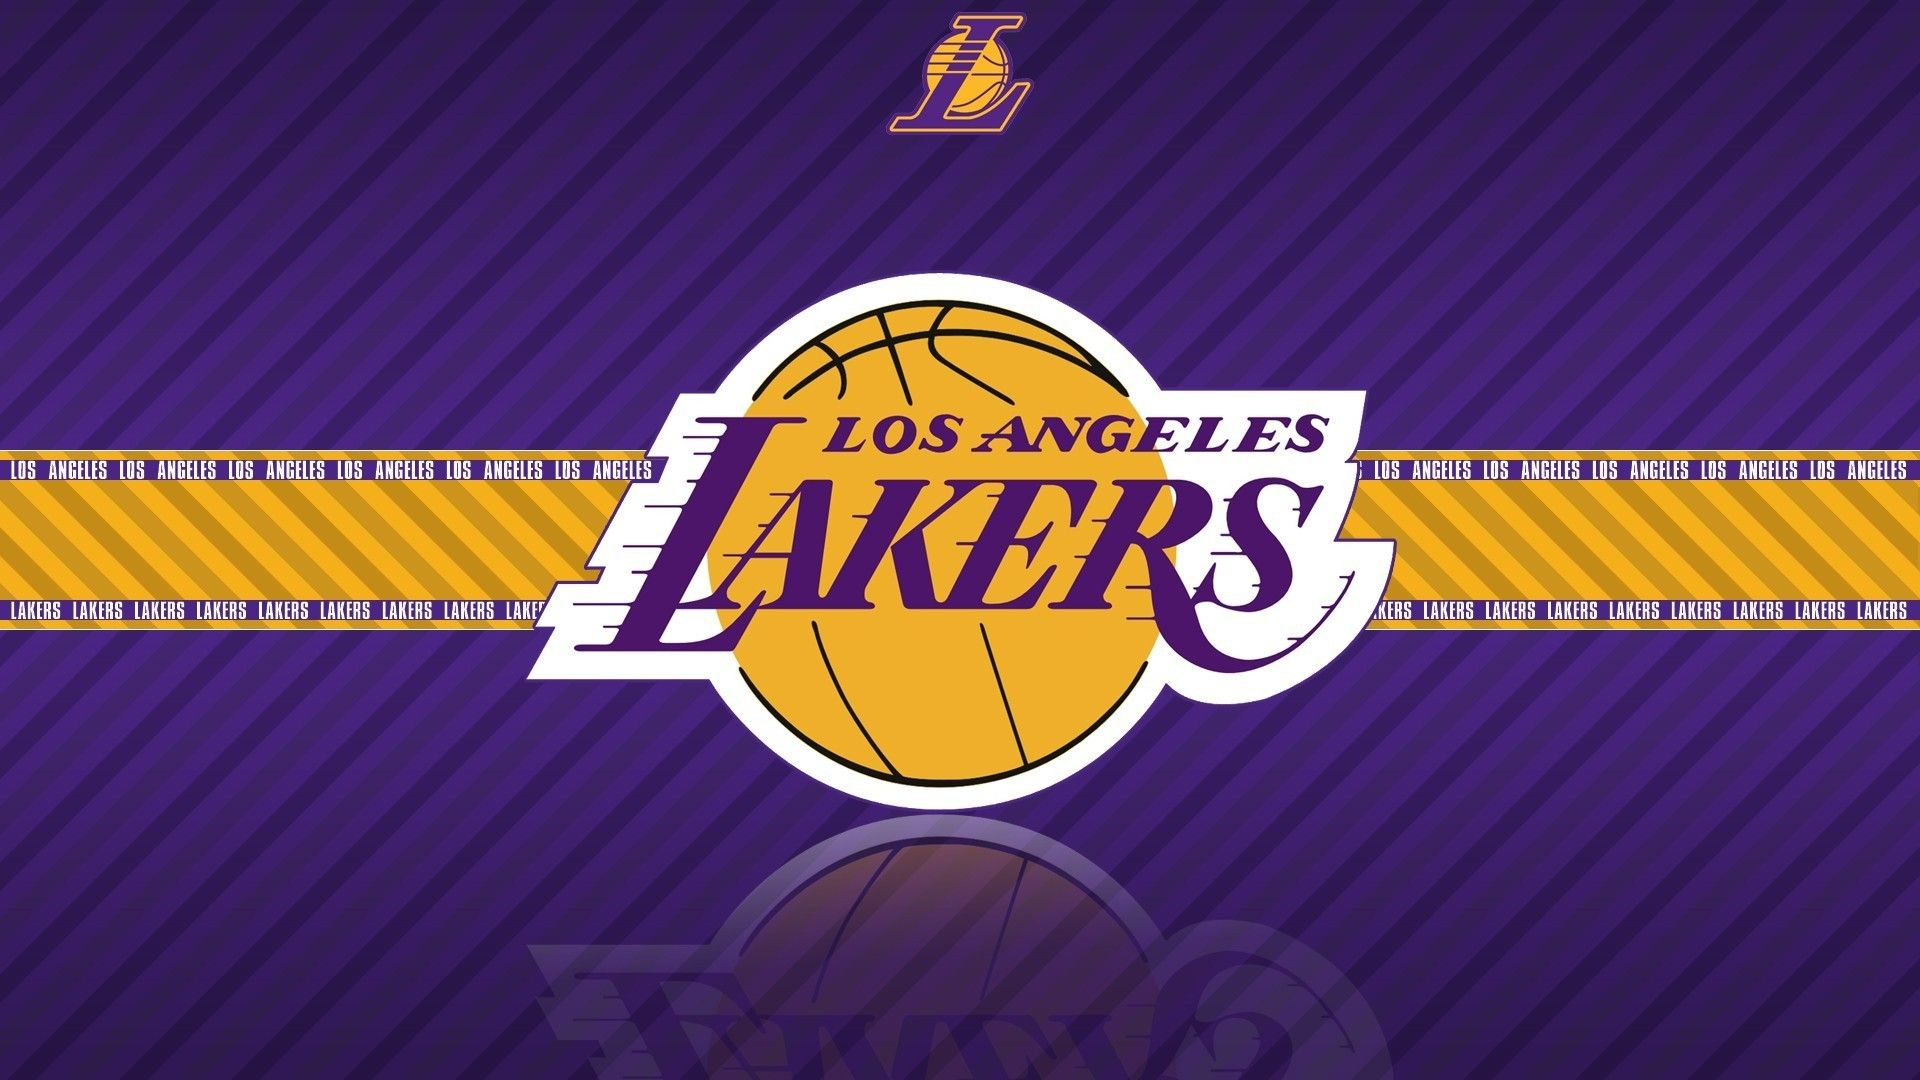 Los Angeles Lakers NBA Champions 2020 Wallpaper